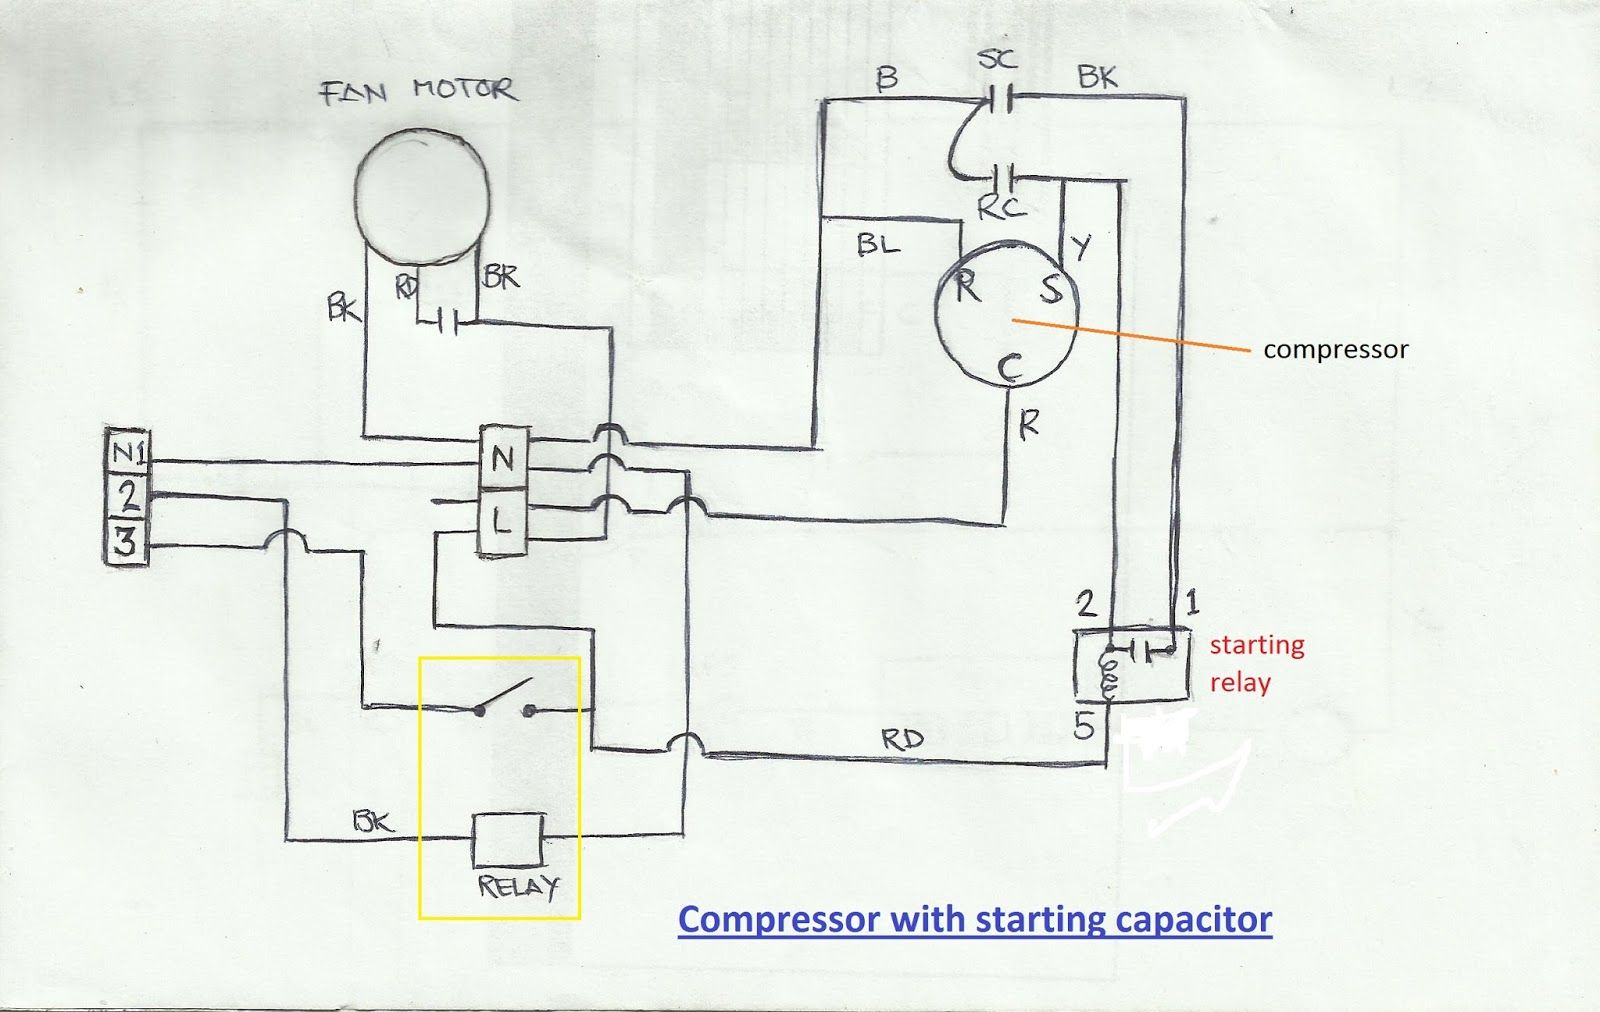 Air Conditioner Compressor Wiring Diagram Before You Call A Ac Tips 1996 Volvo 850 Diagrams Repair Man Visit My Blog For Some On How To Save Thousands In Repairs